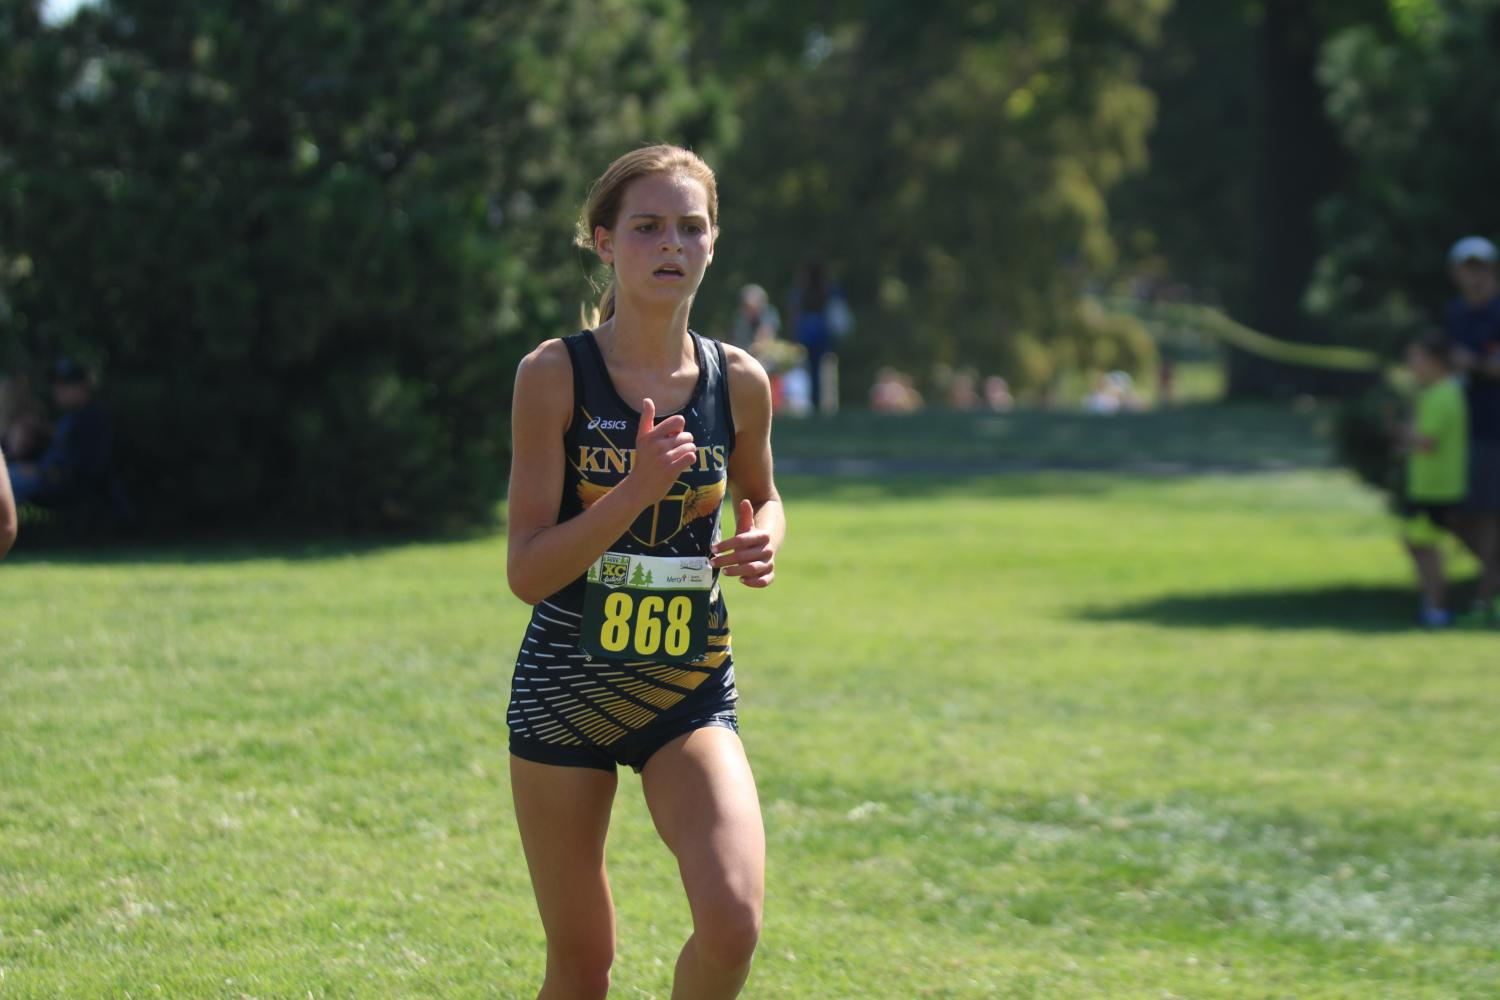 Sophomore Paige Hercules runs in a meet at Forest Park on Sept. 9